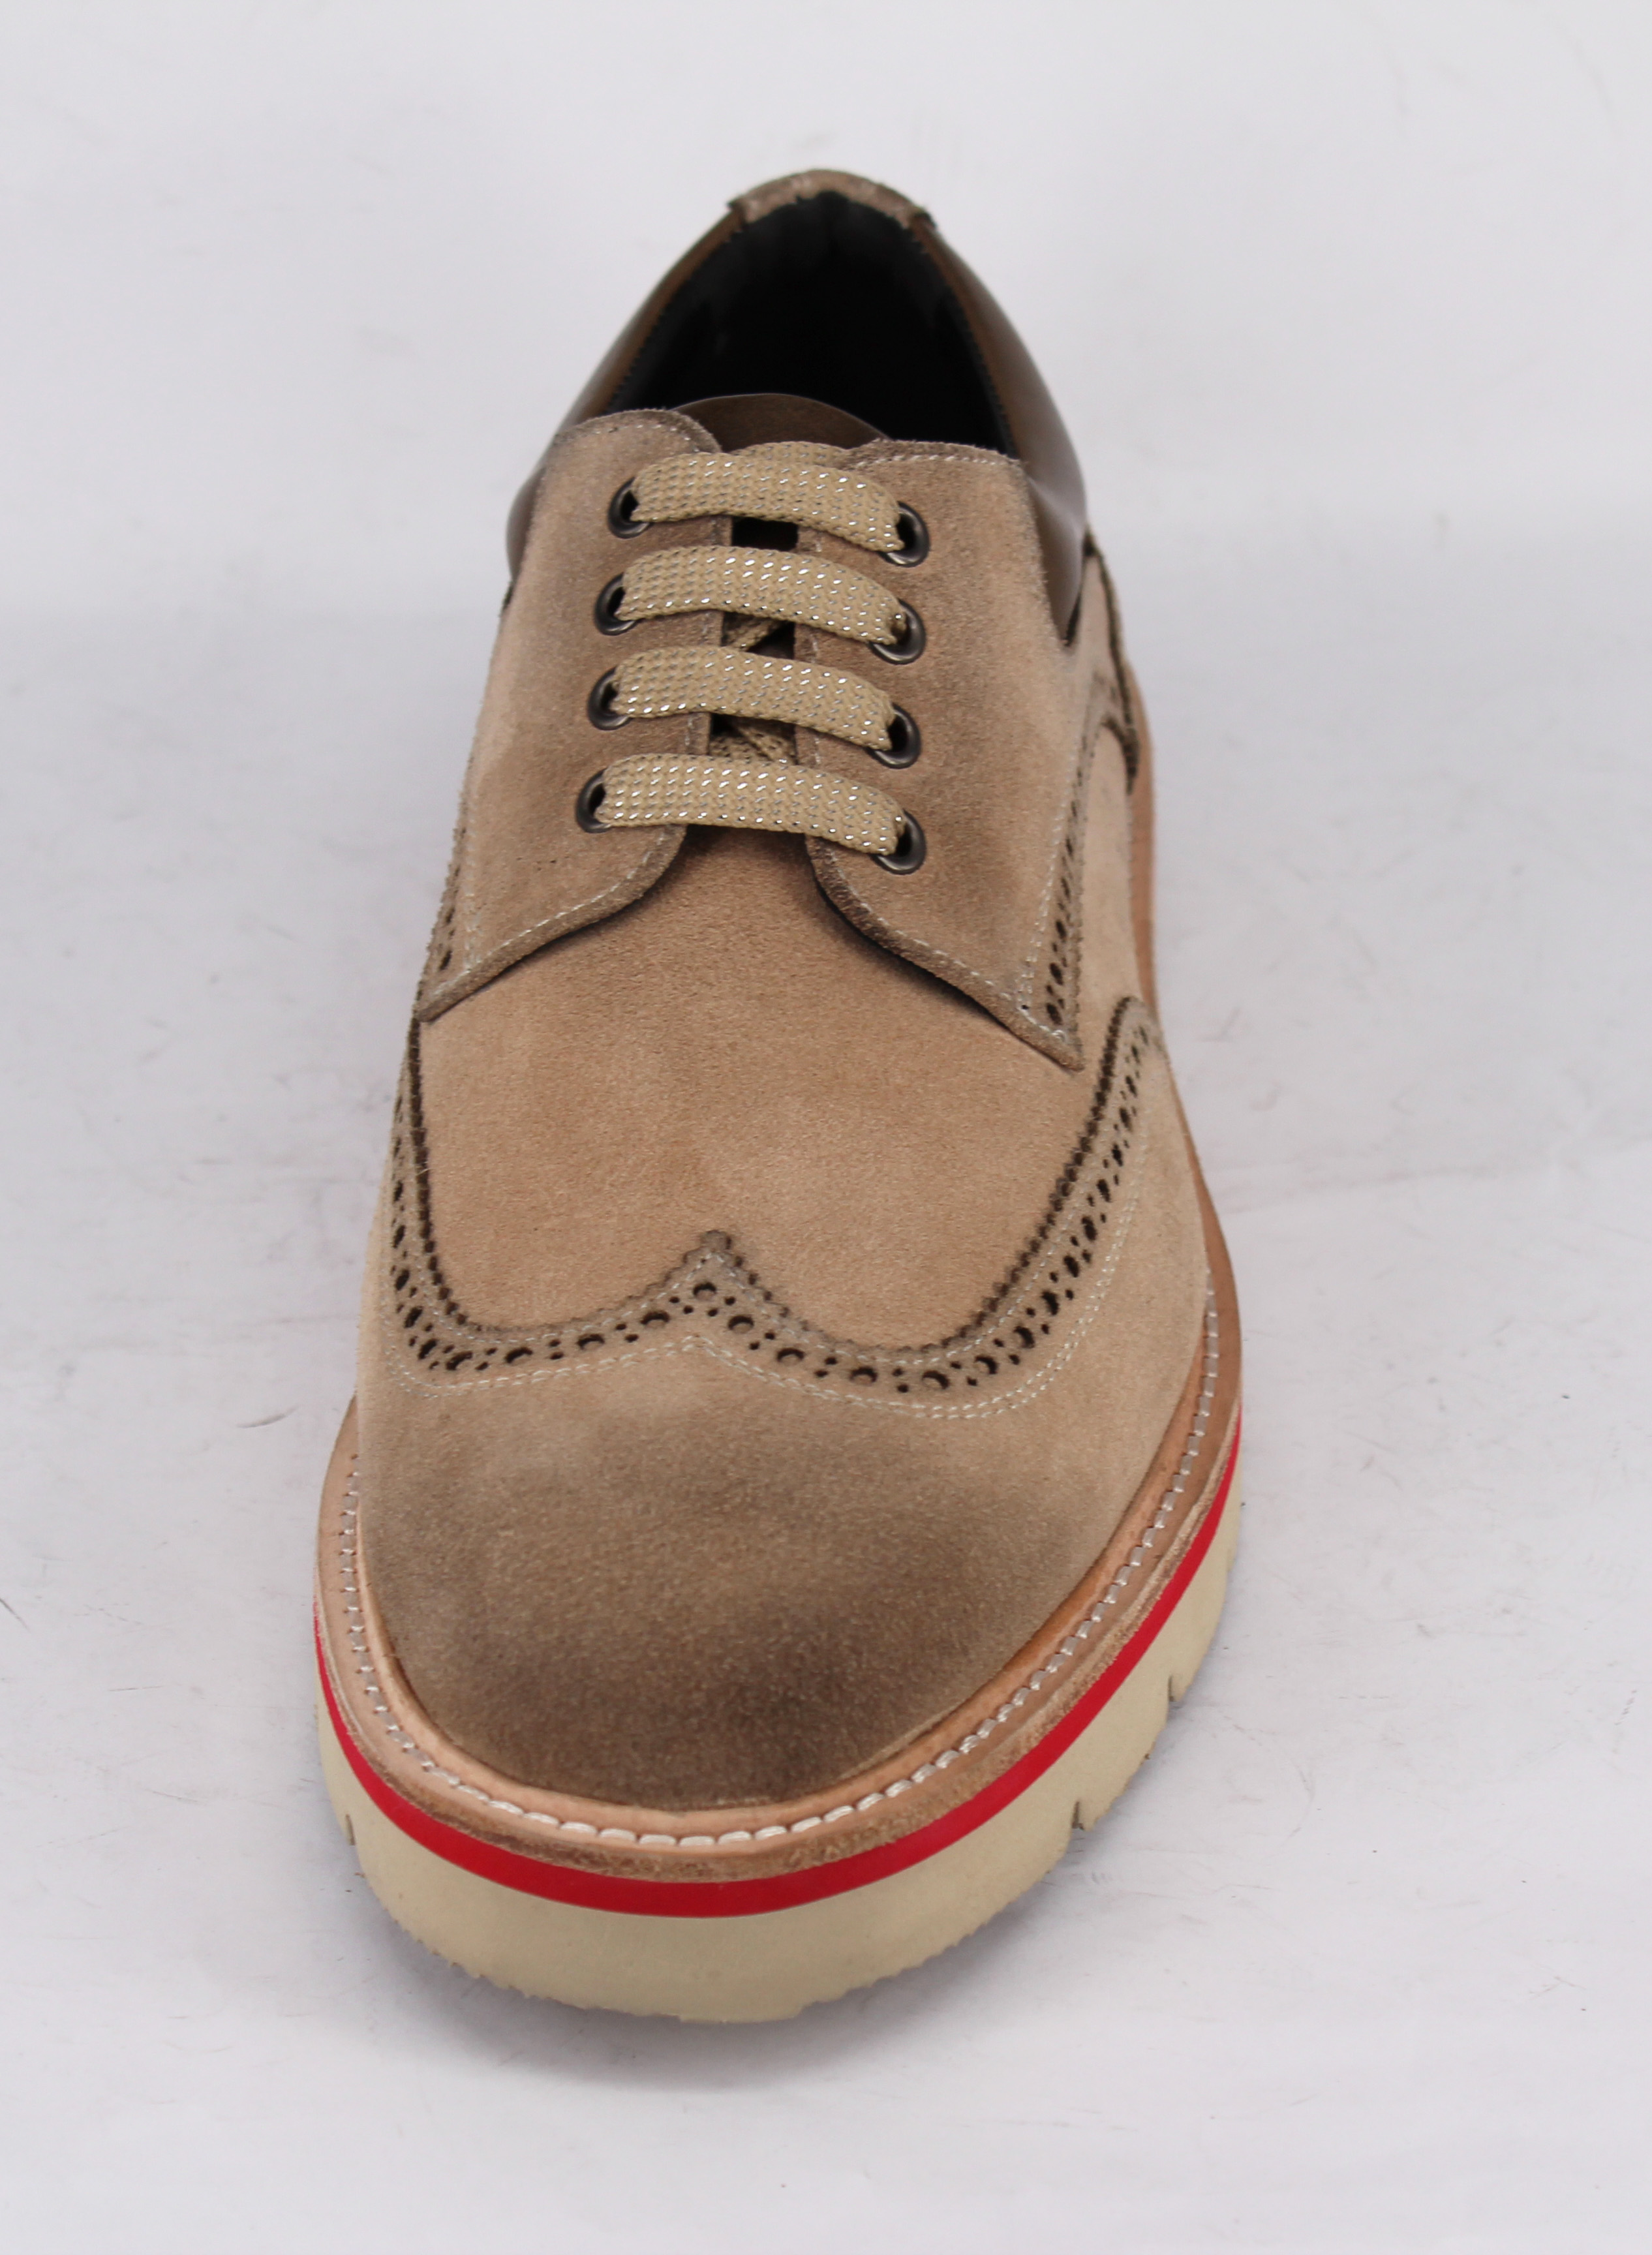 shoes for casual new suede Alibaba Spring men leather most comfortable w0xq0vpR